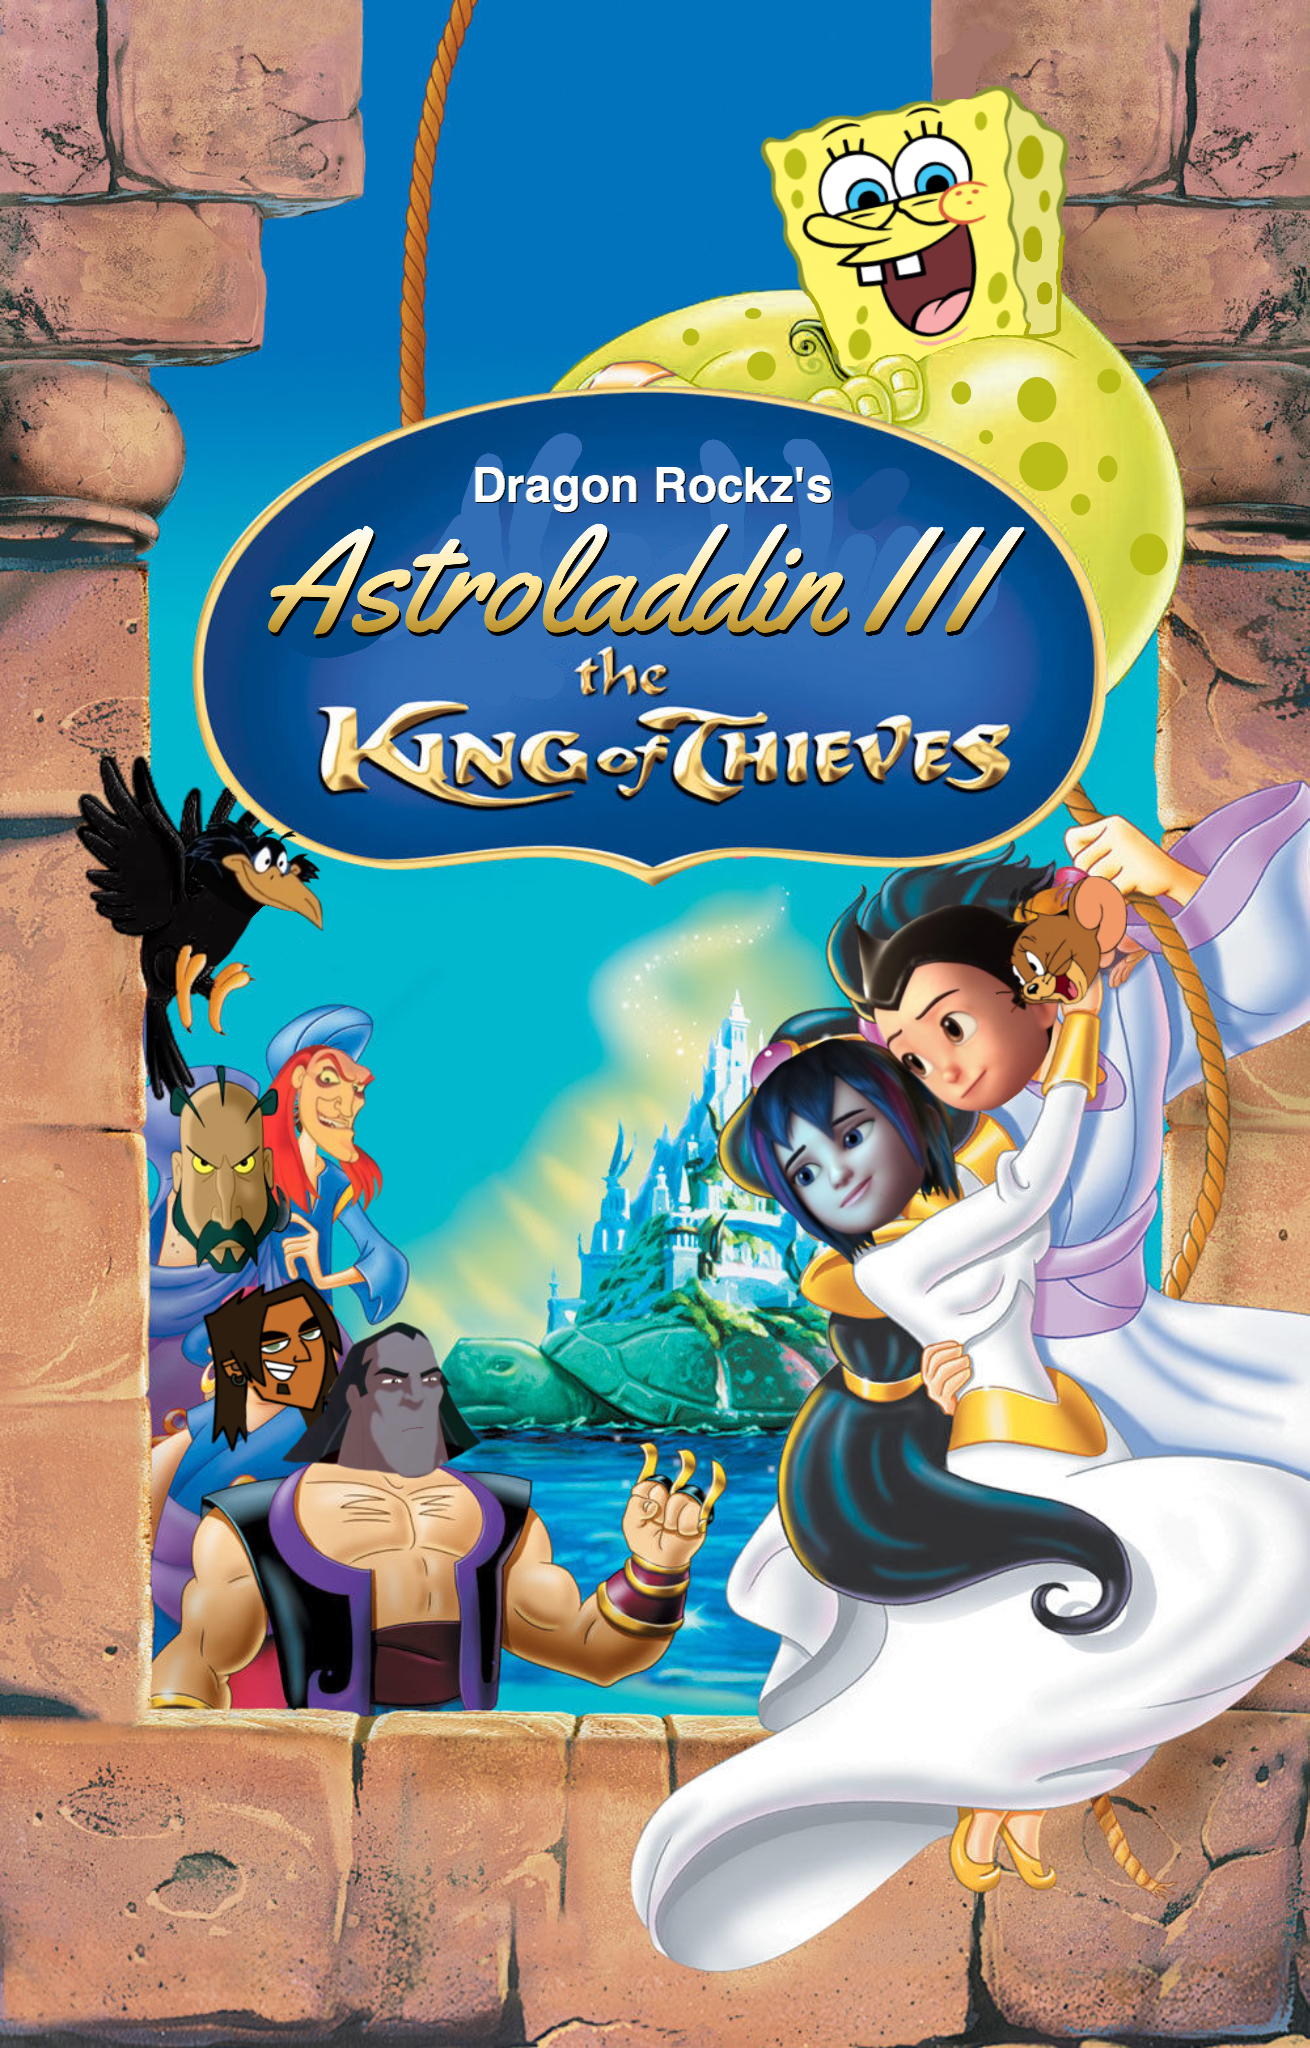 Astroladdin III: The King of Thieves